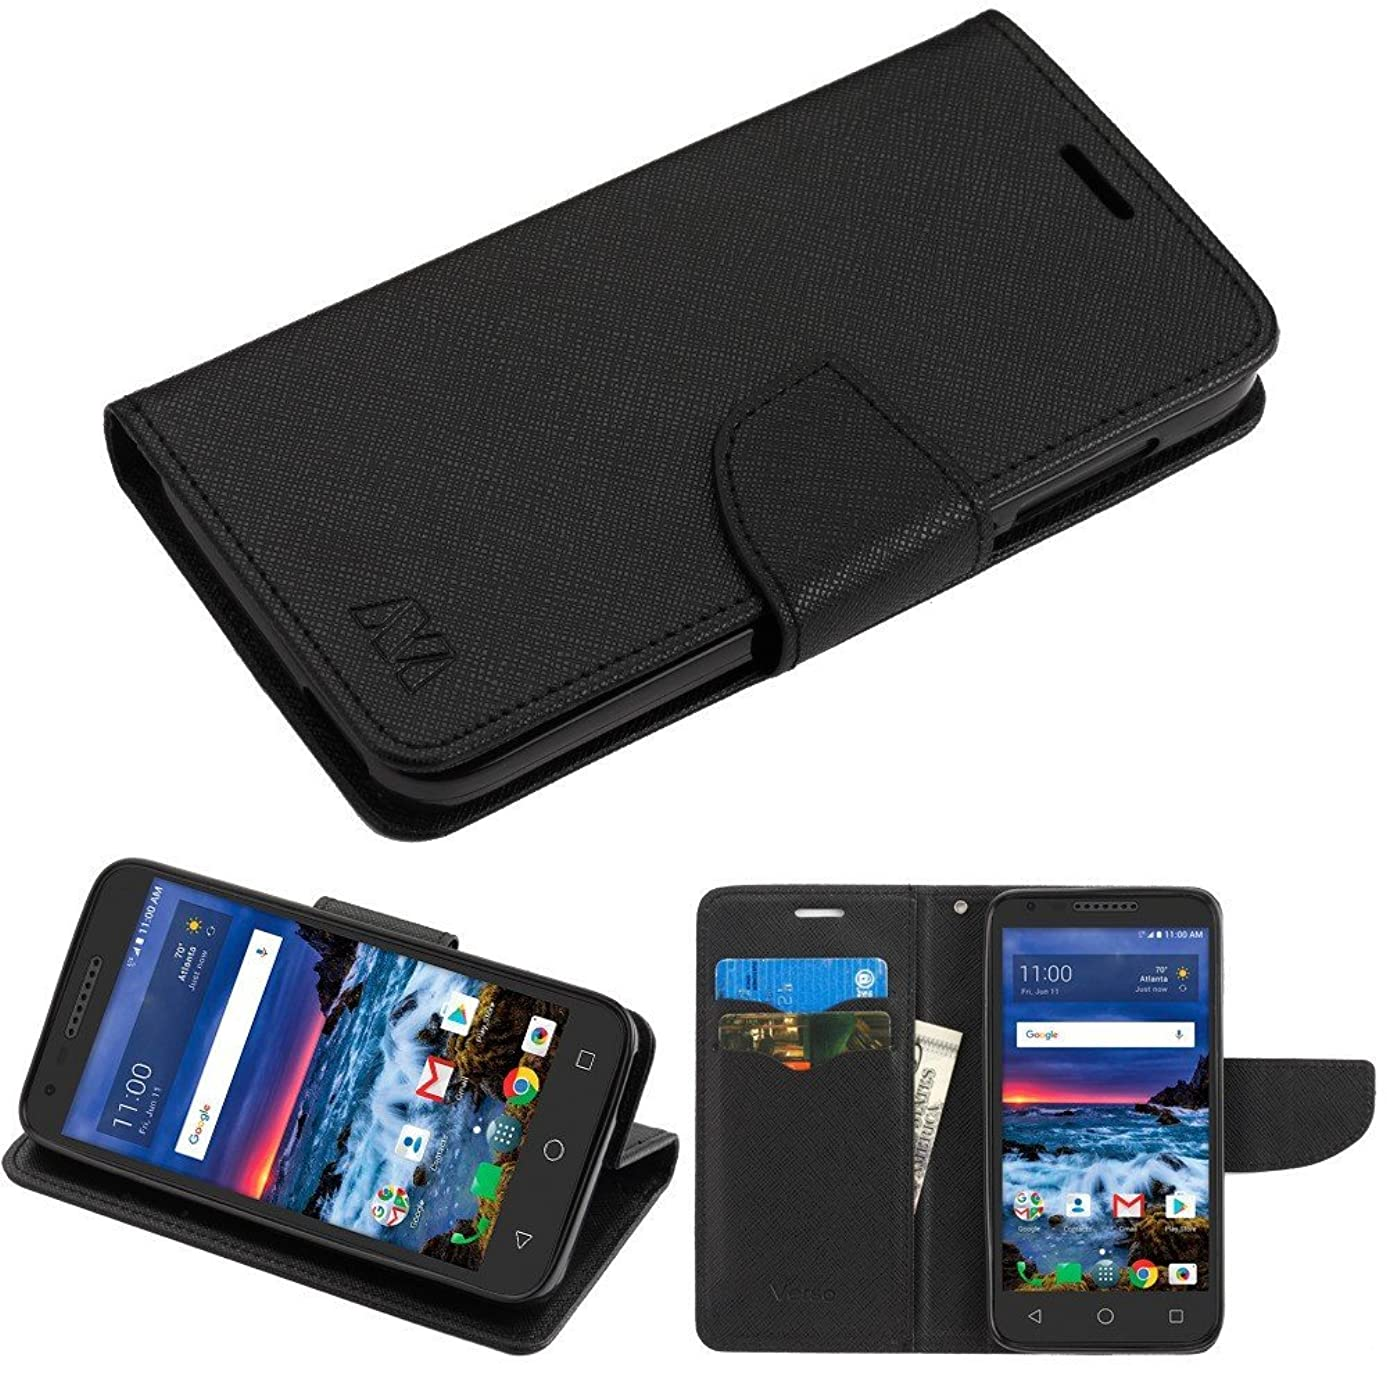 For Alcatel Raven A574BL Wallet, Phonelicious PU Leather Case Premium Pouch ID Credit Card Cover Flip Folio Book Style with Money Slot +Pen (BLACK WALLET)